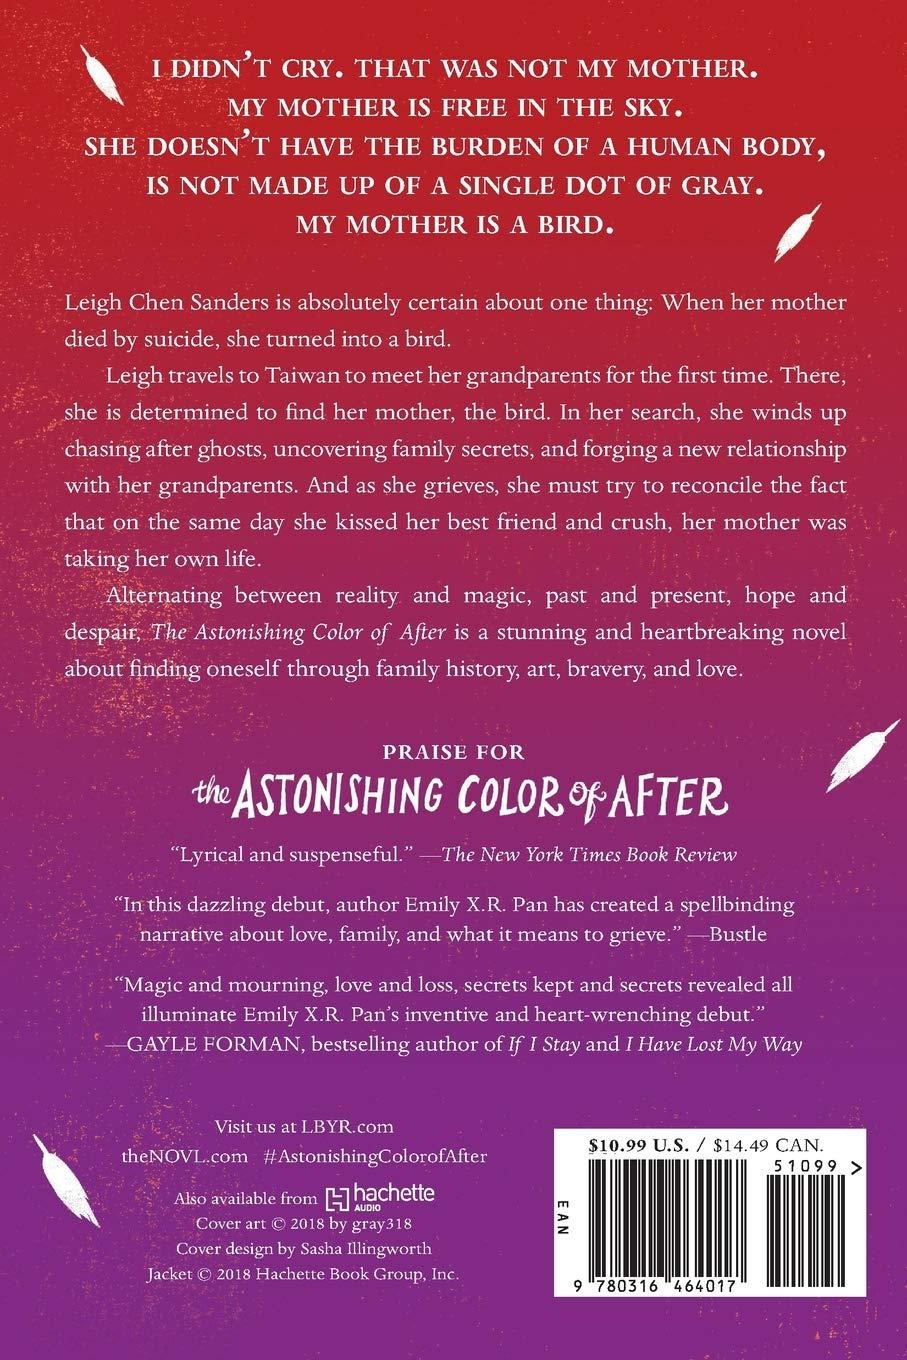 Amazon Com The Astonishing Color Of After 9780316464017 Pan Emily X R Books